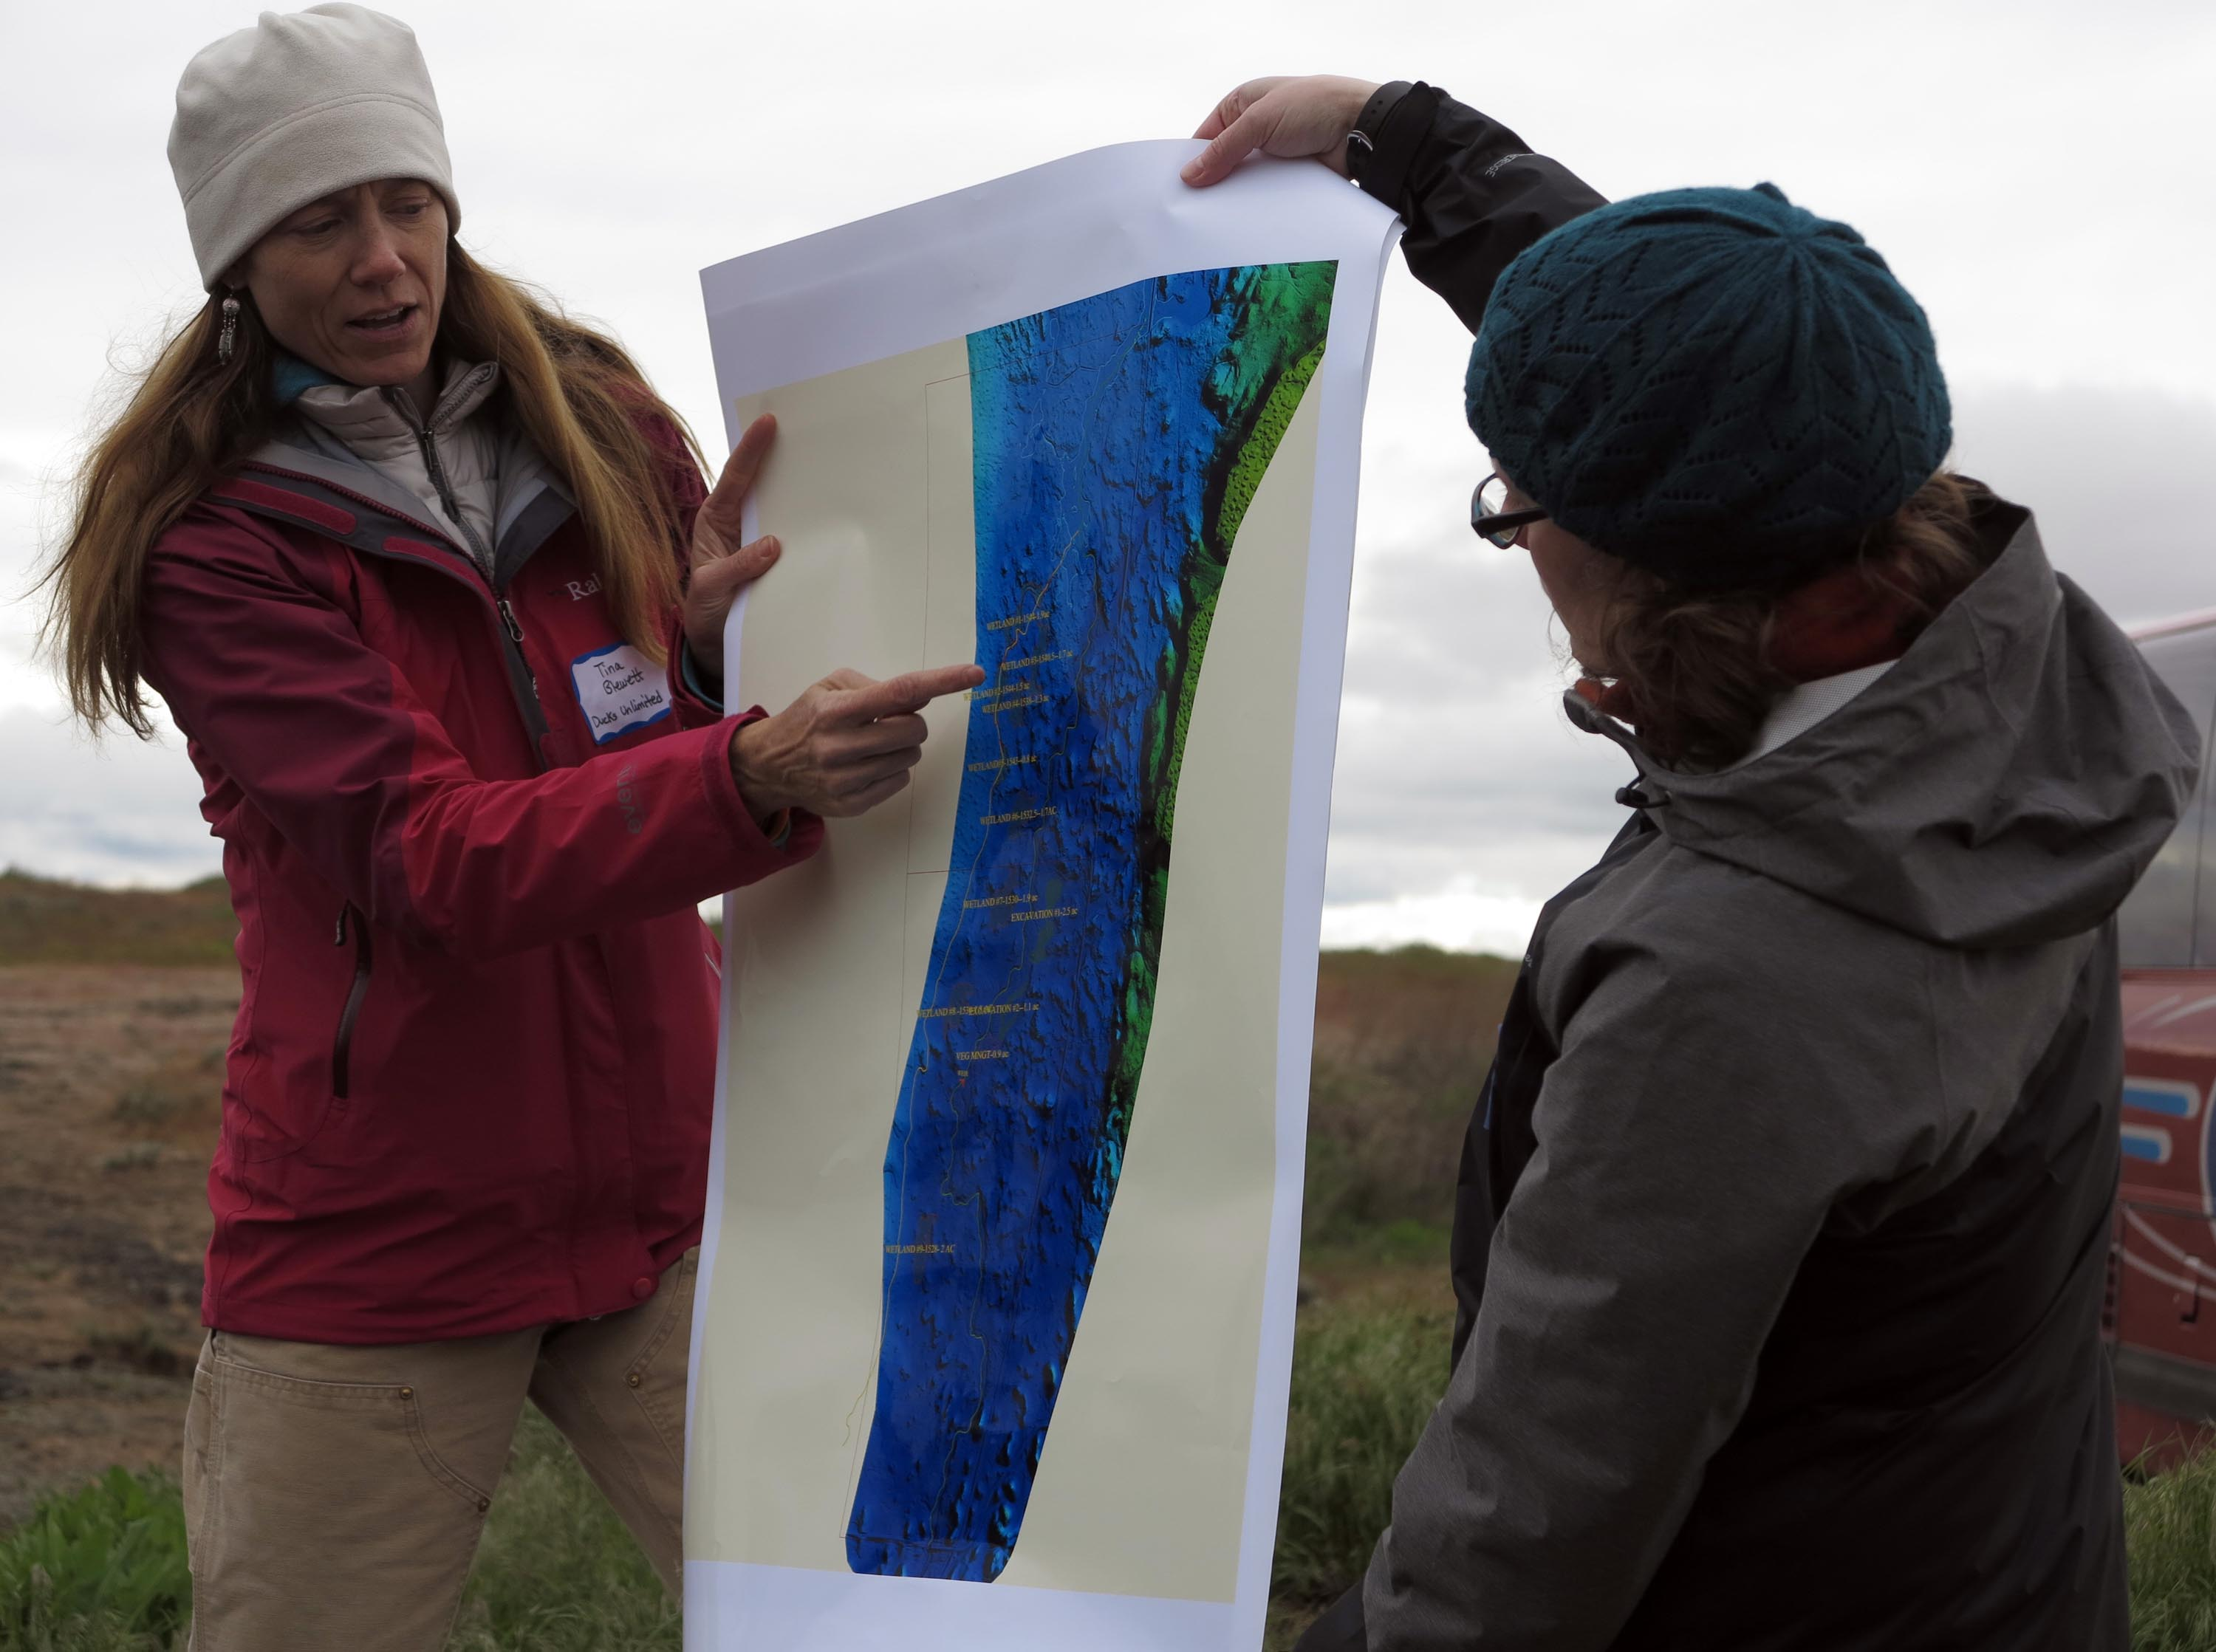 Two people holding large printed page with LIDAR Data visuals